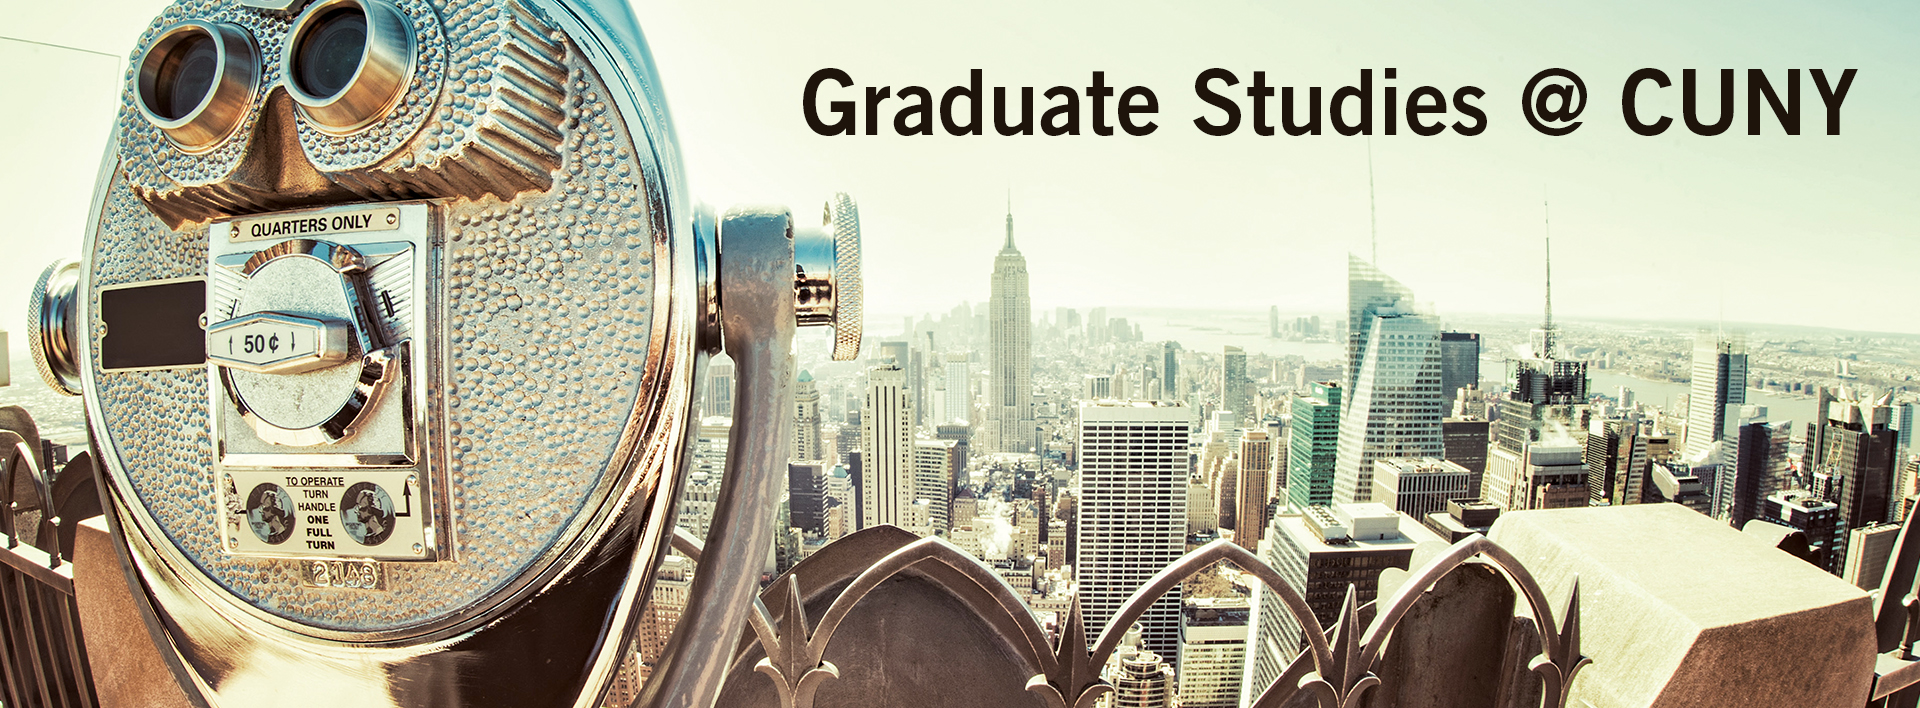 Graduate Studies at CUNY graphic